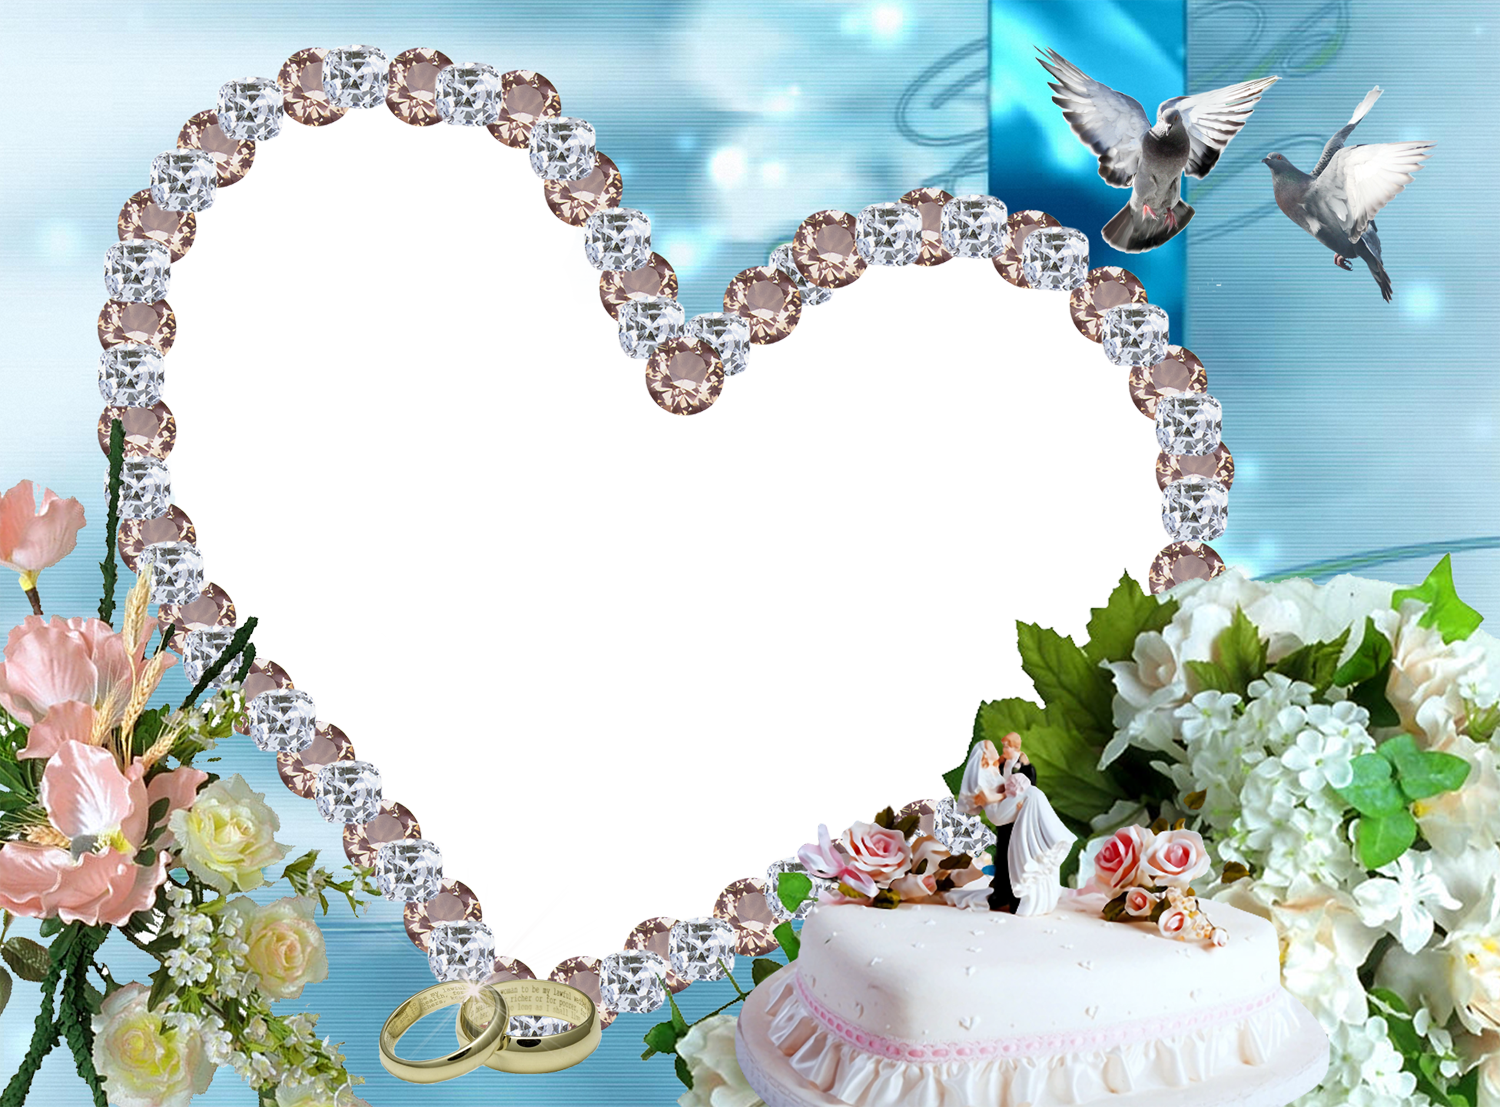 Picture Frame Love Wallpaper: Picture Frame Wallpaper